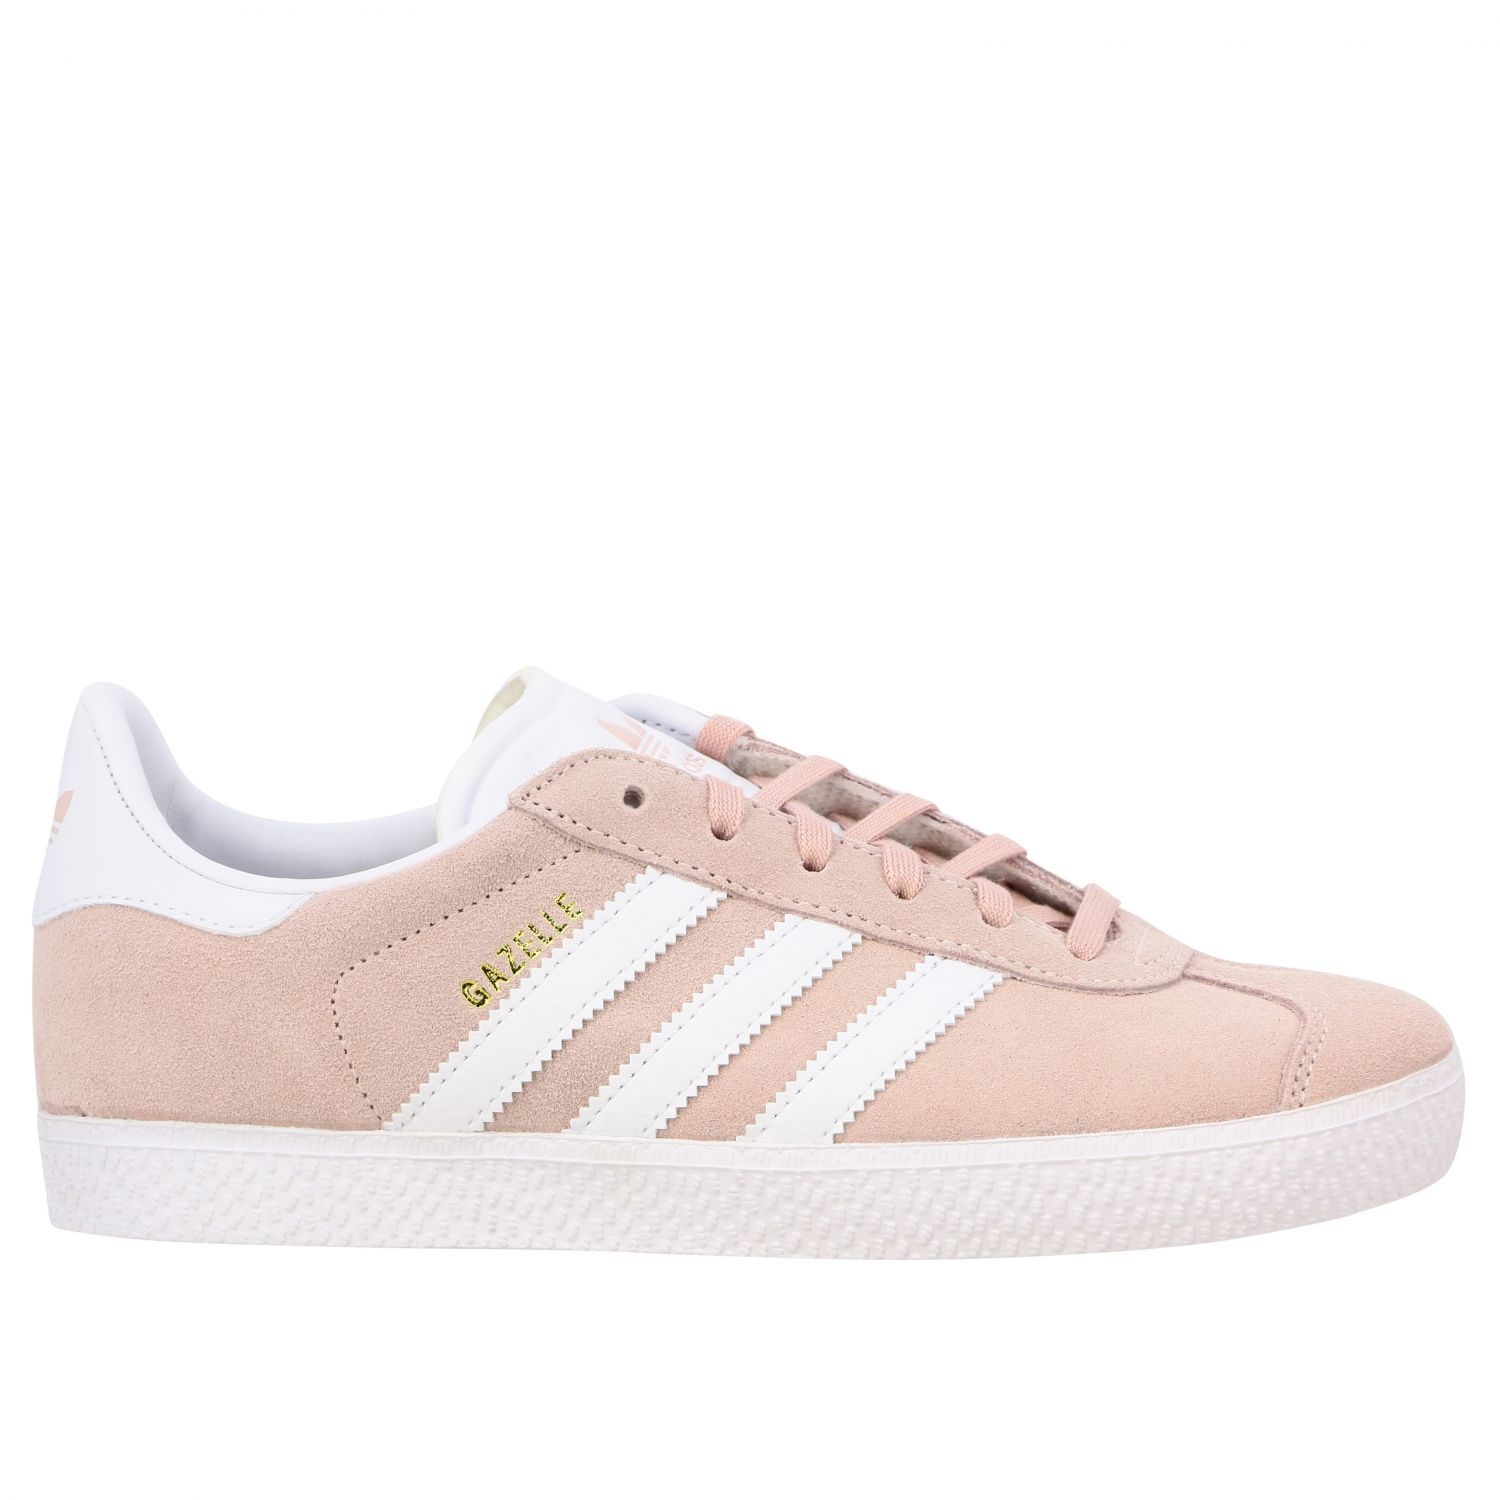 Shoes Adidas Originals: Gazelle J Adidas Originals sneakers in synthetic suede and leather pink 1